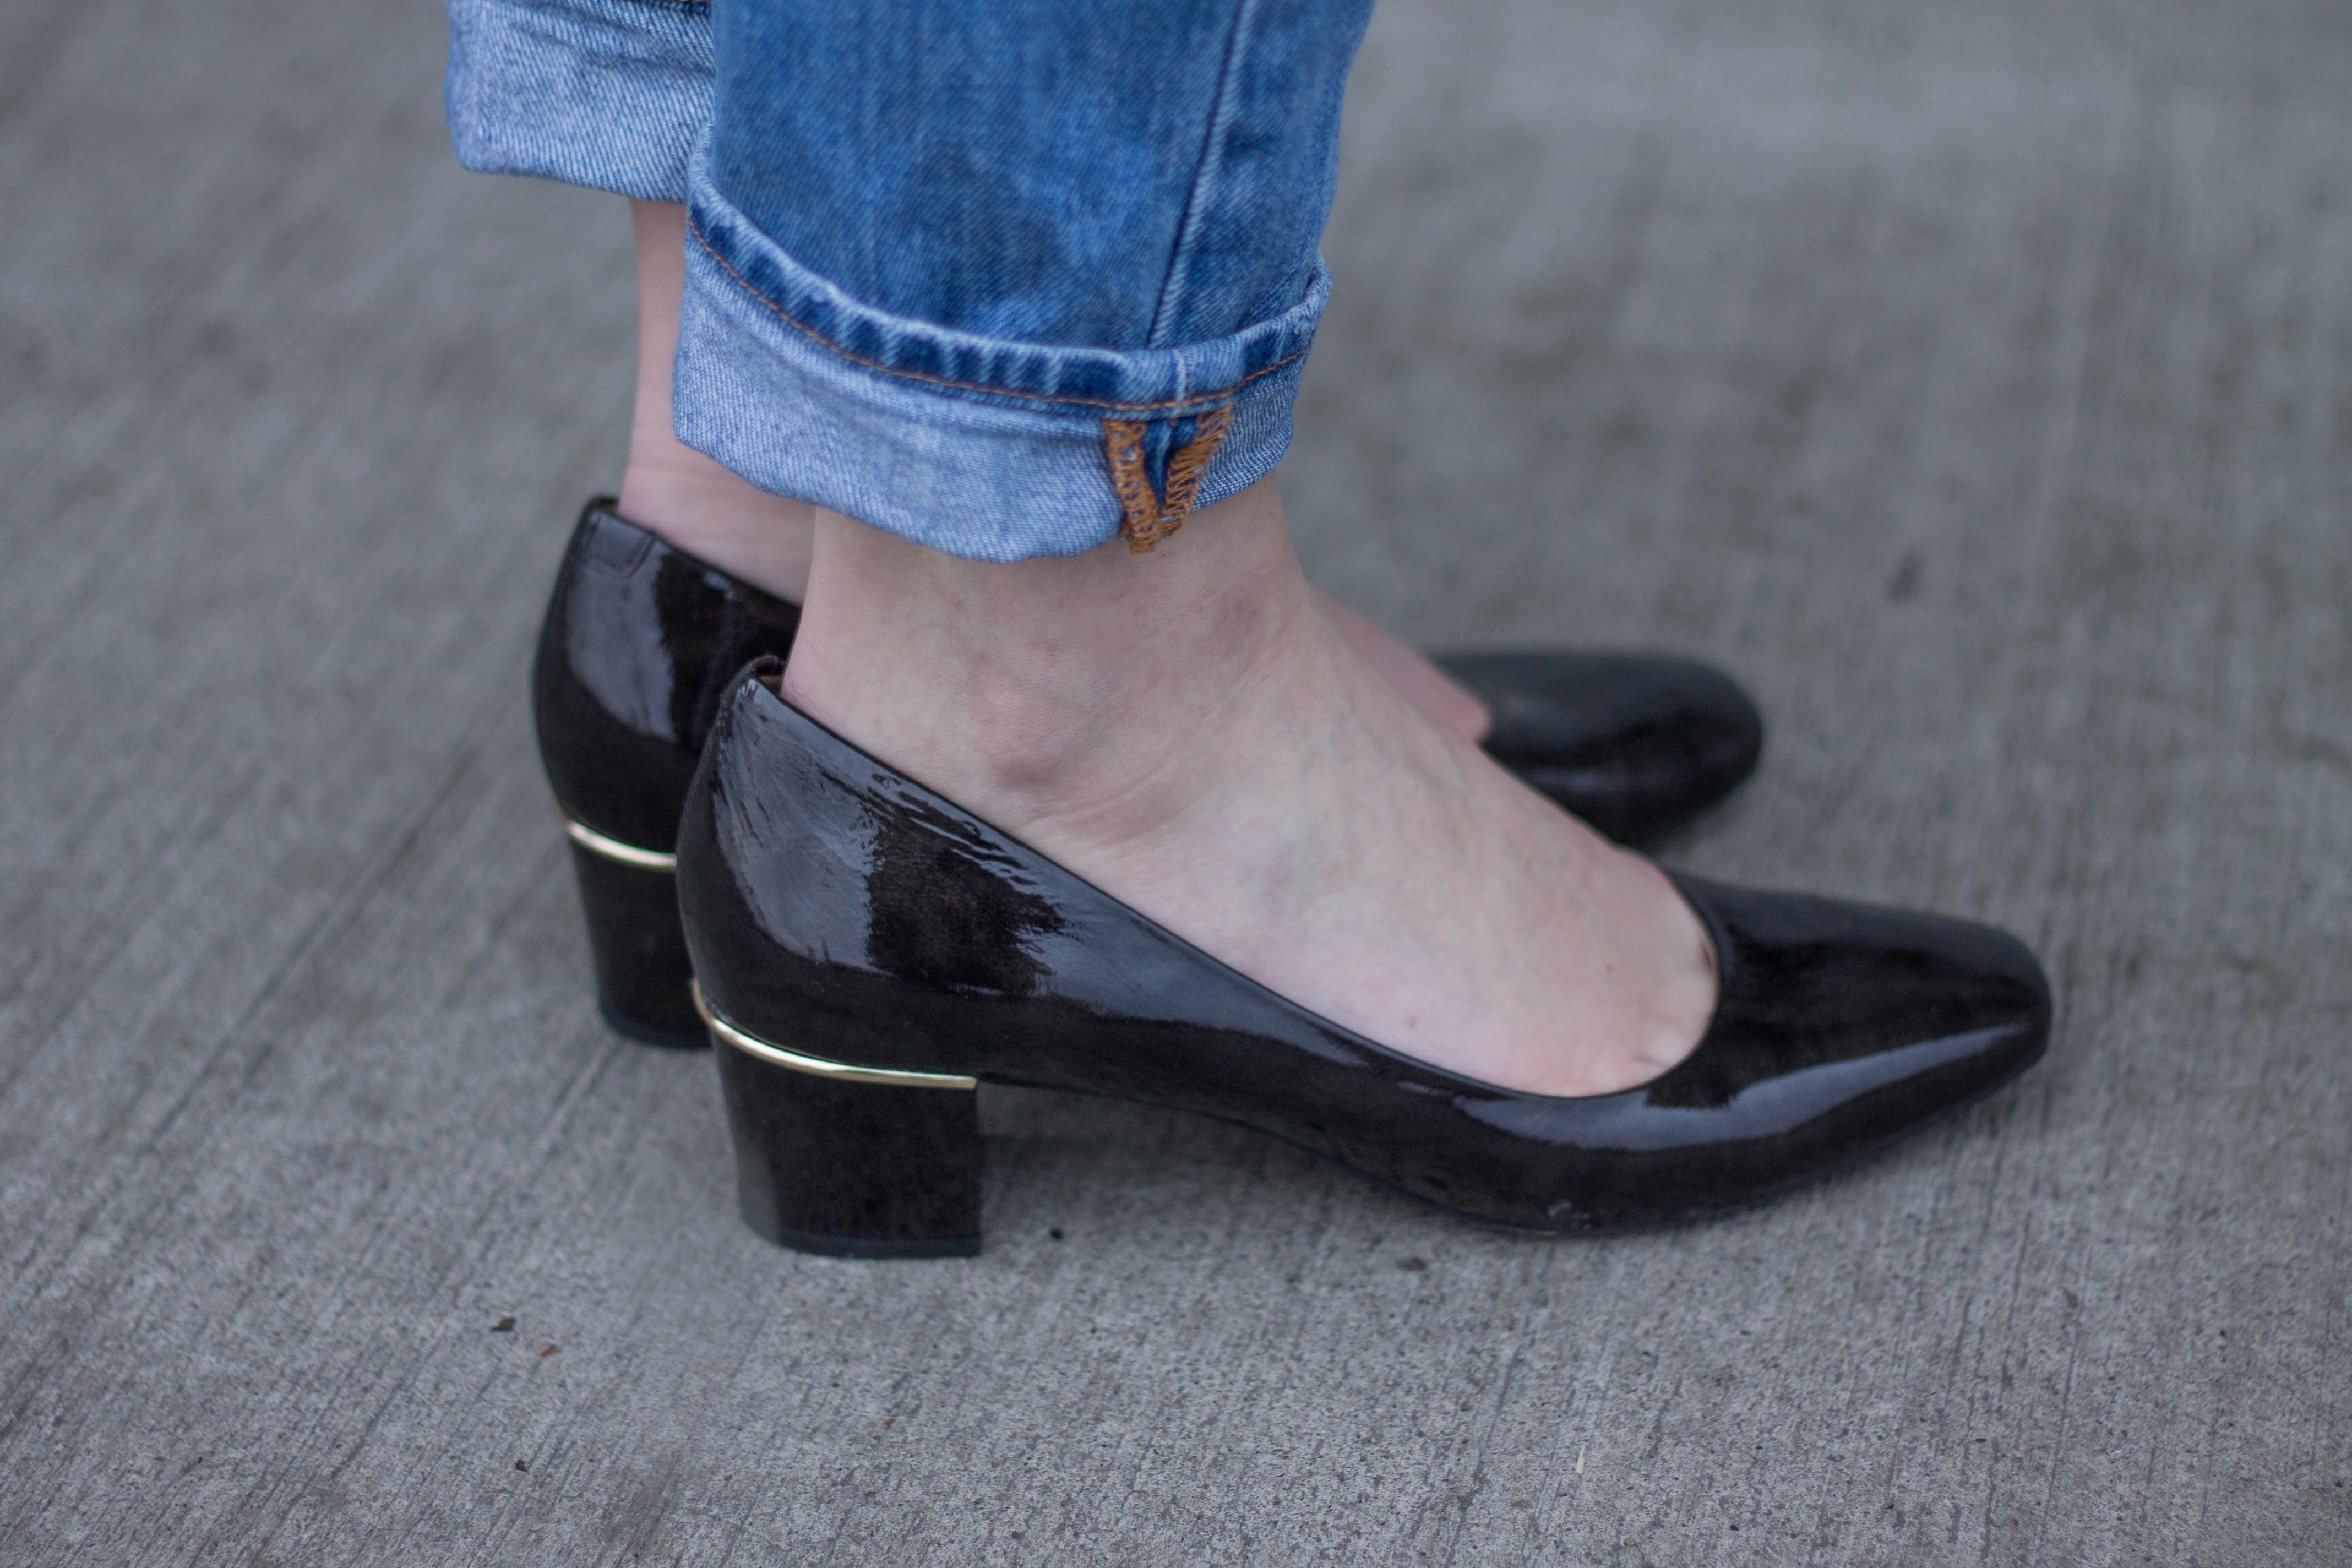 Mom Jeans meet Granny Shoes